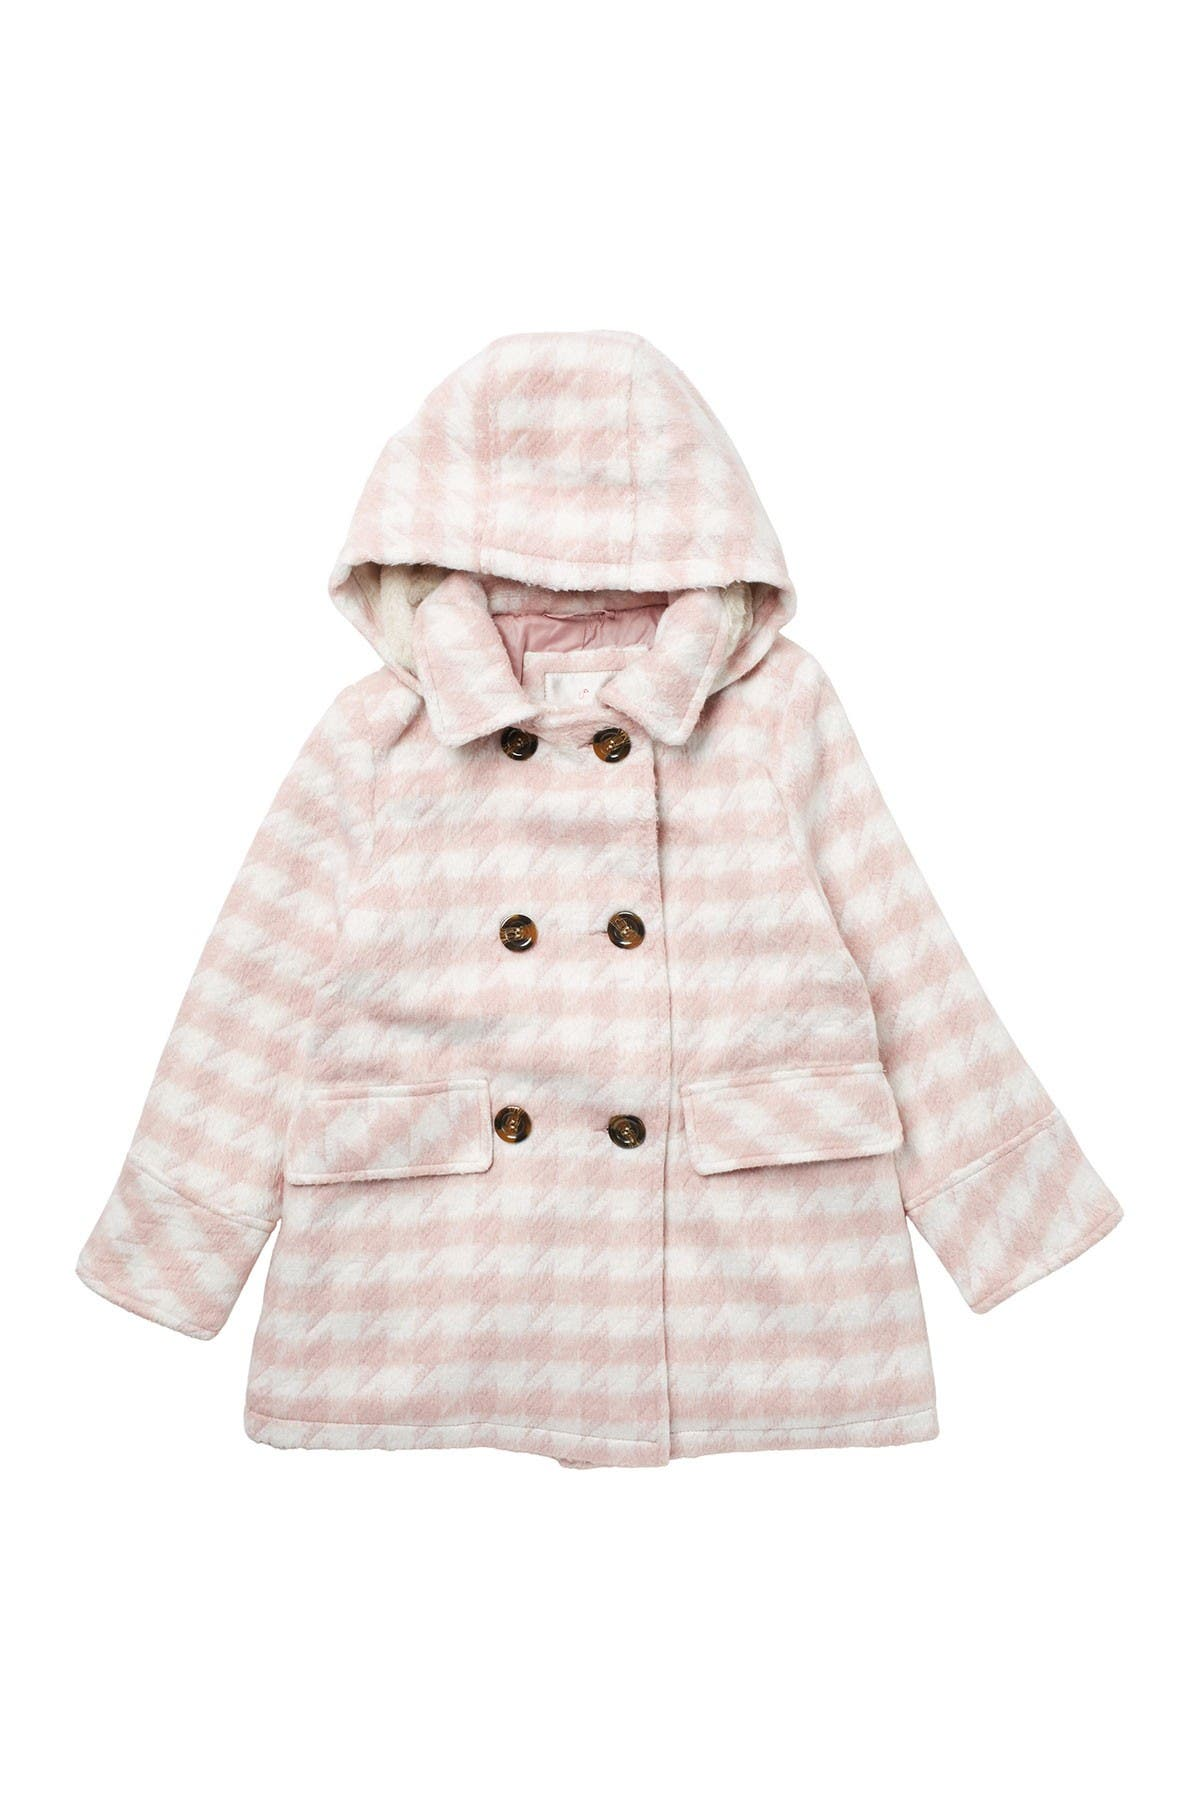 Image of Urban Republic Double Breasted Woolen Coat